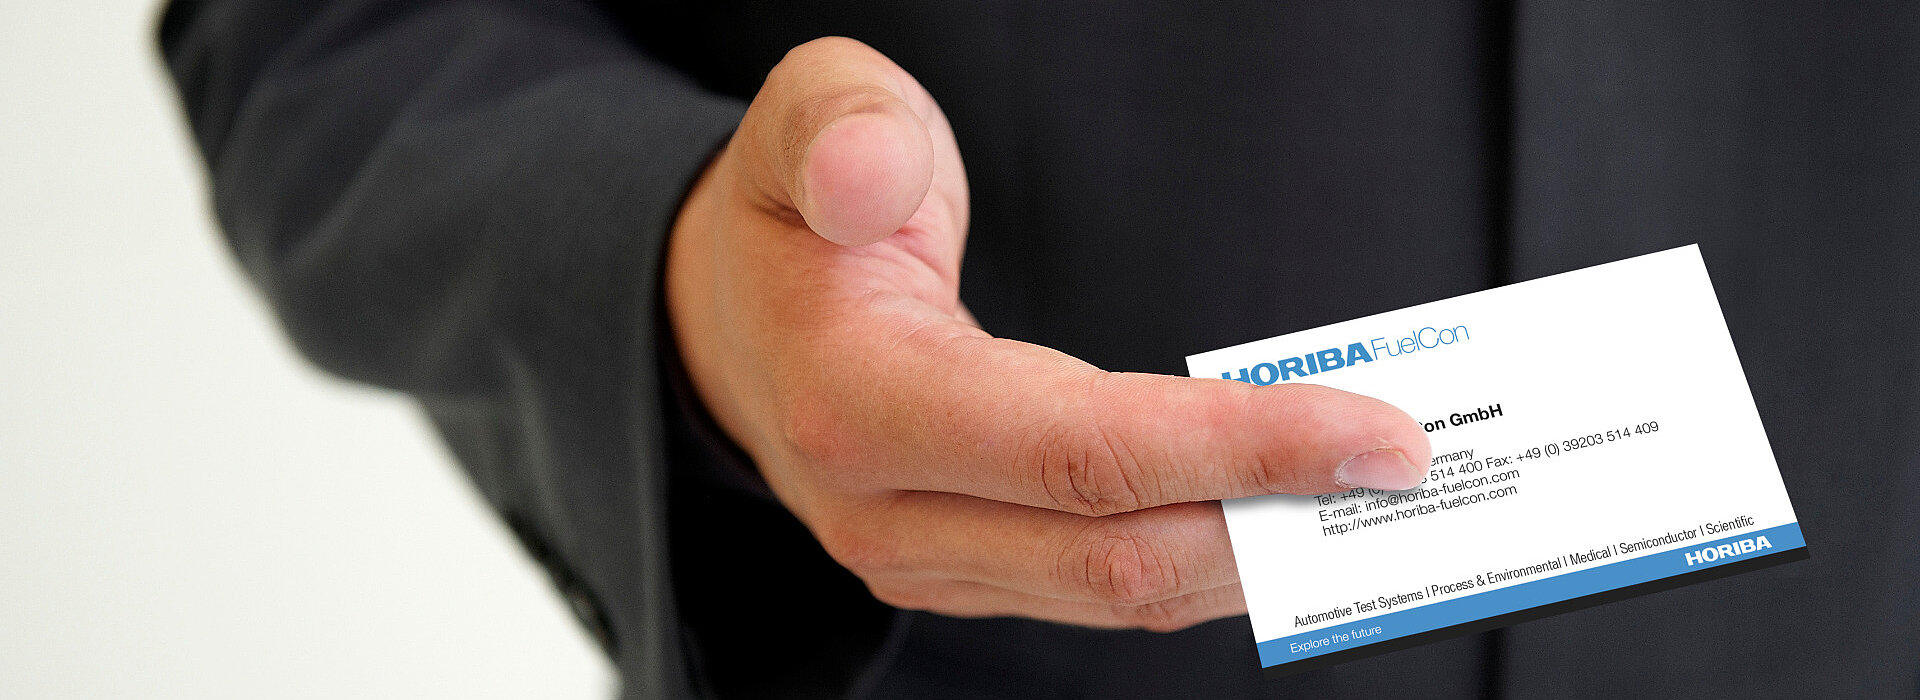 Close-up of a Hand holding a HORIBA FuelCon Business Card